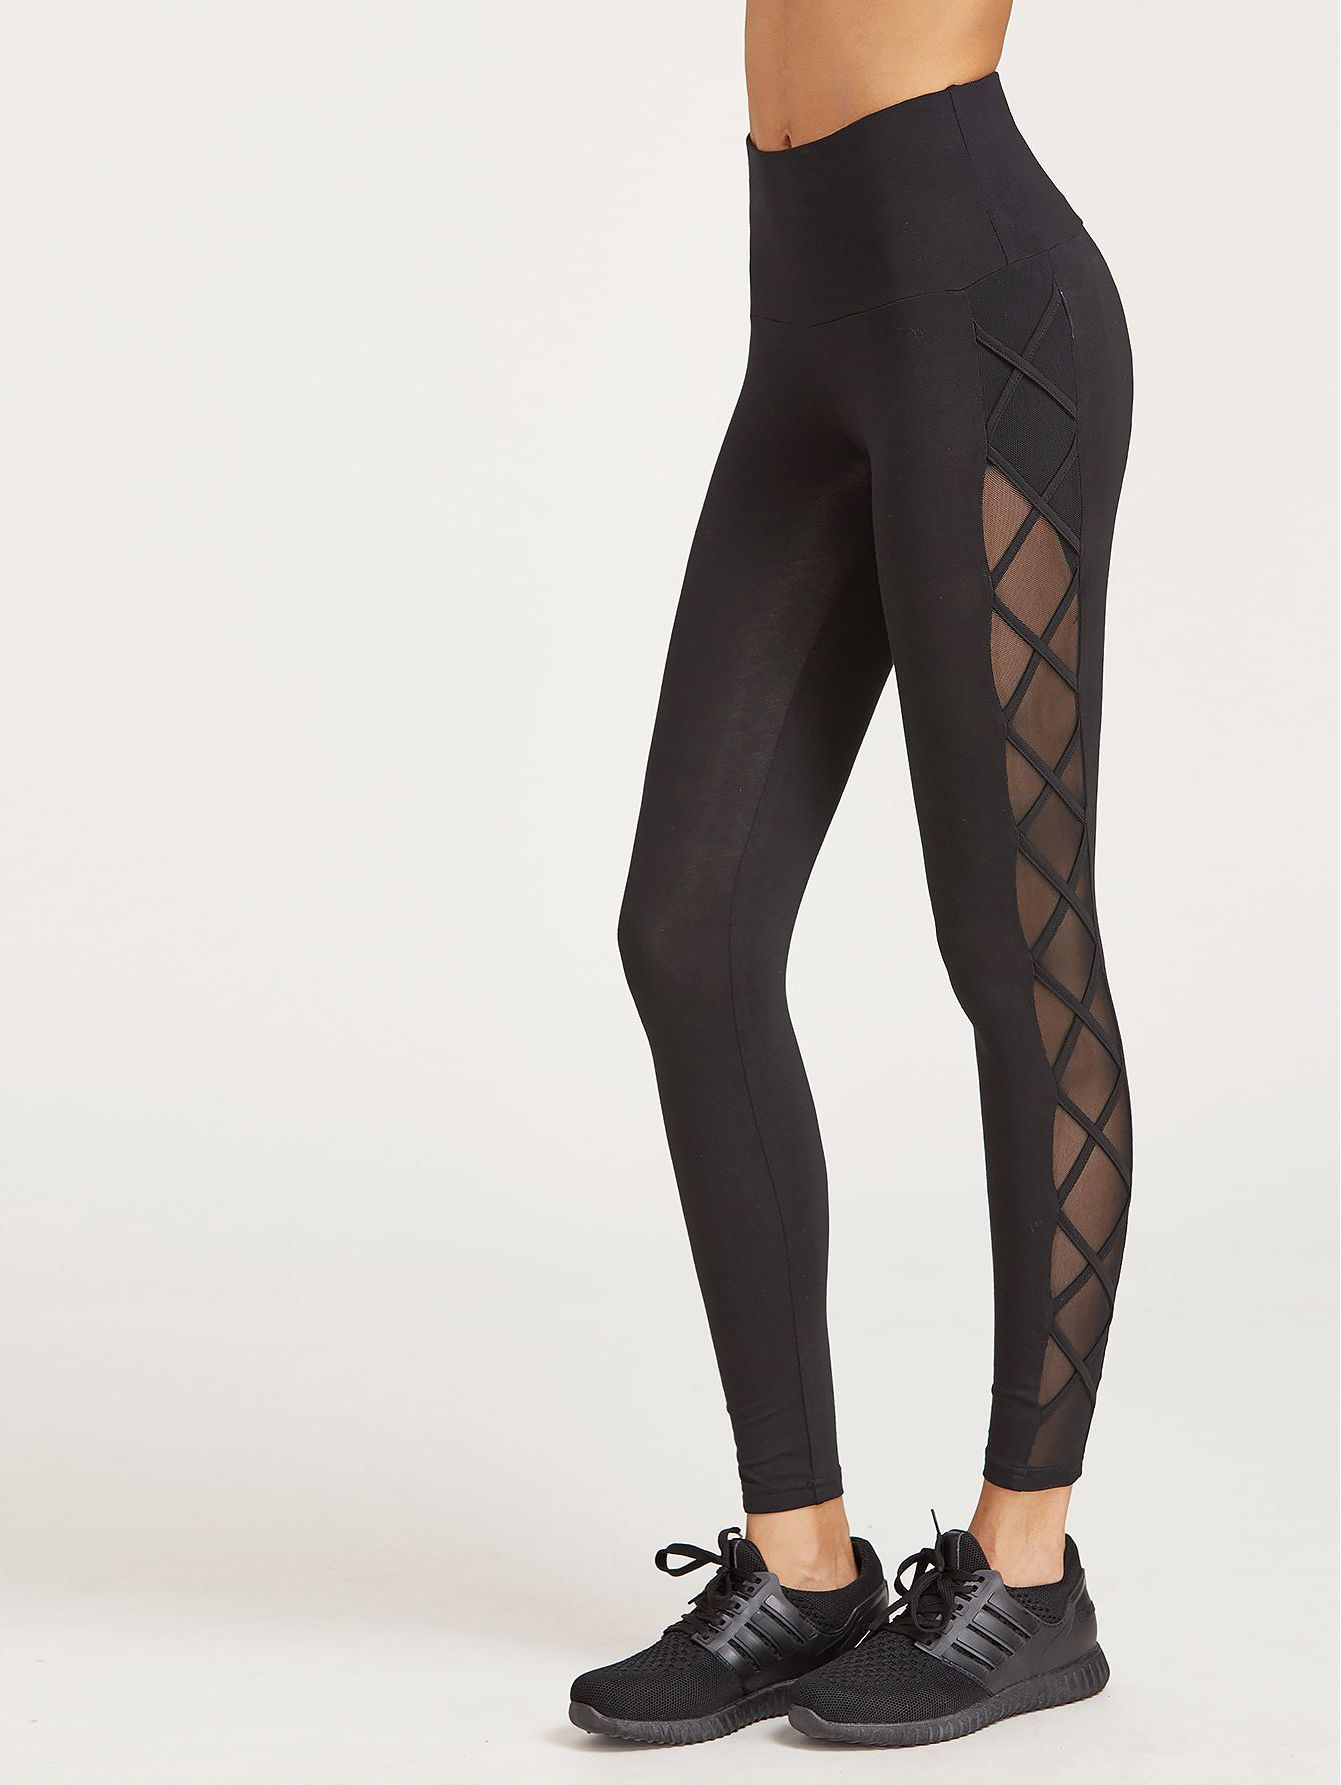 21++ Leggings with cutouts on the side ideas in 2021